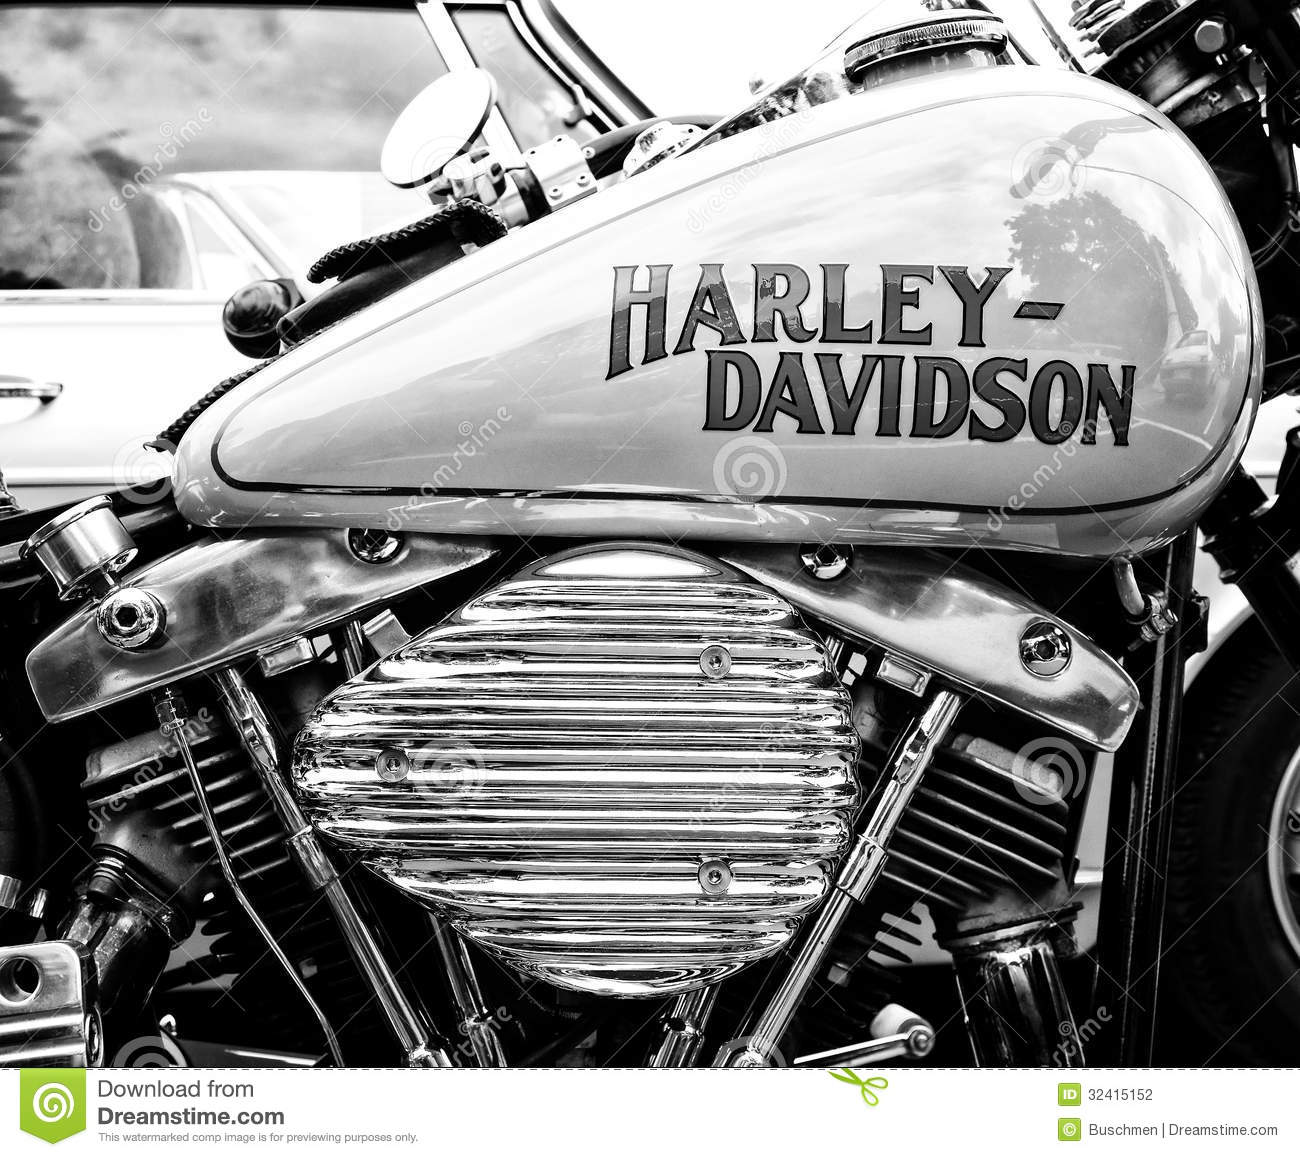 Detail Of The Motorcycle Harley-Davidson (Black And White) Stock ... for Harley Motorcycle Clipart  55dqh